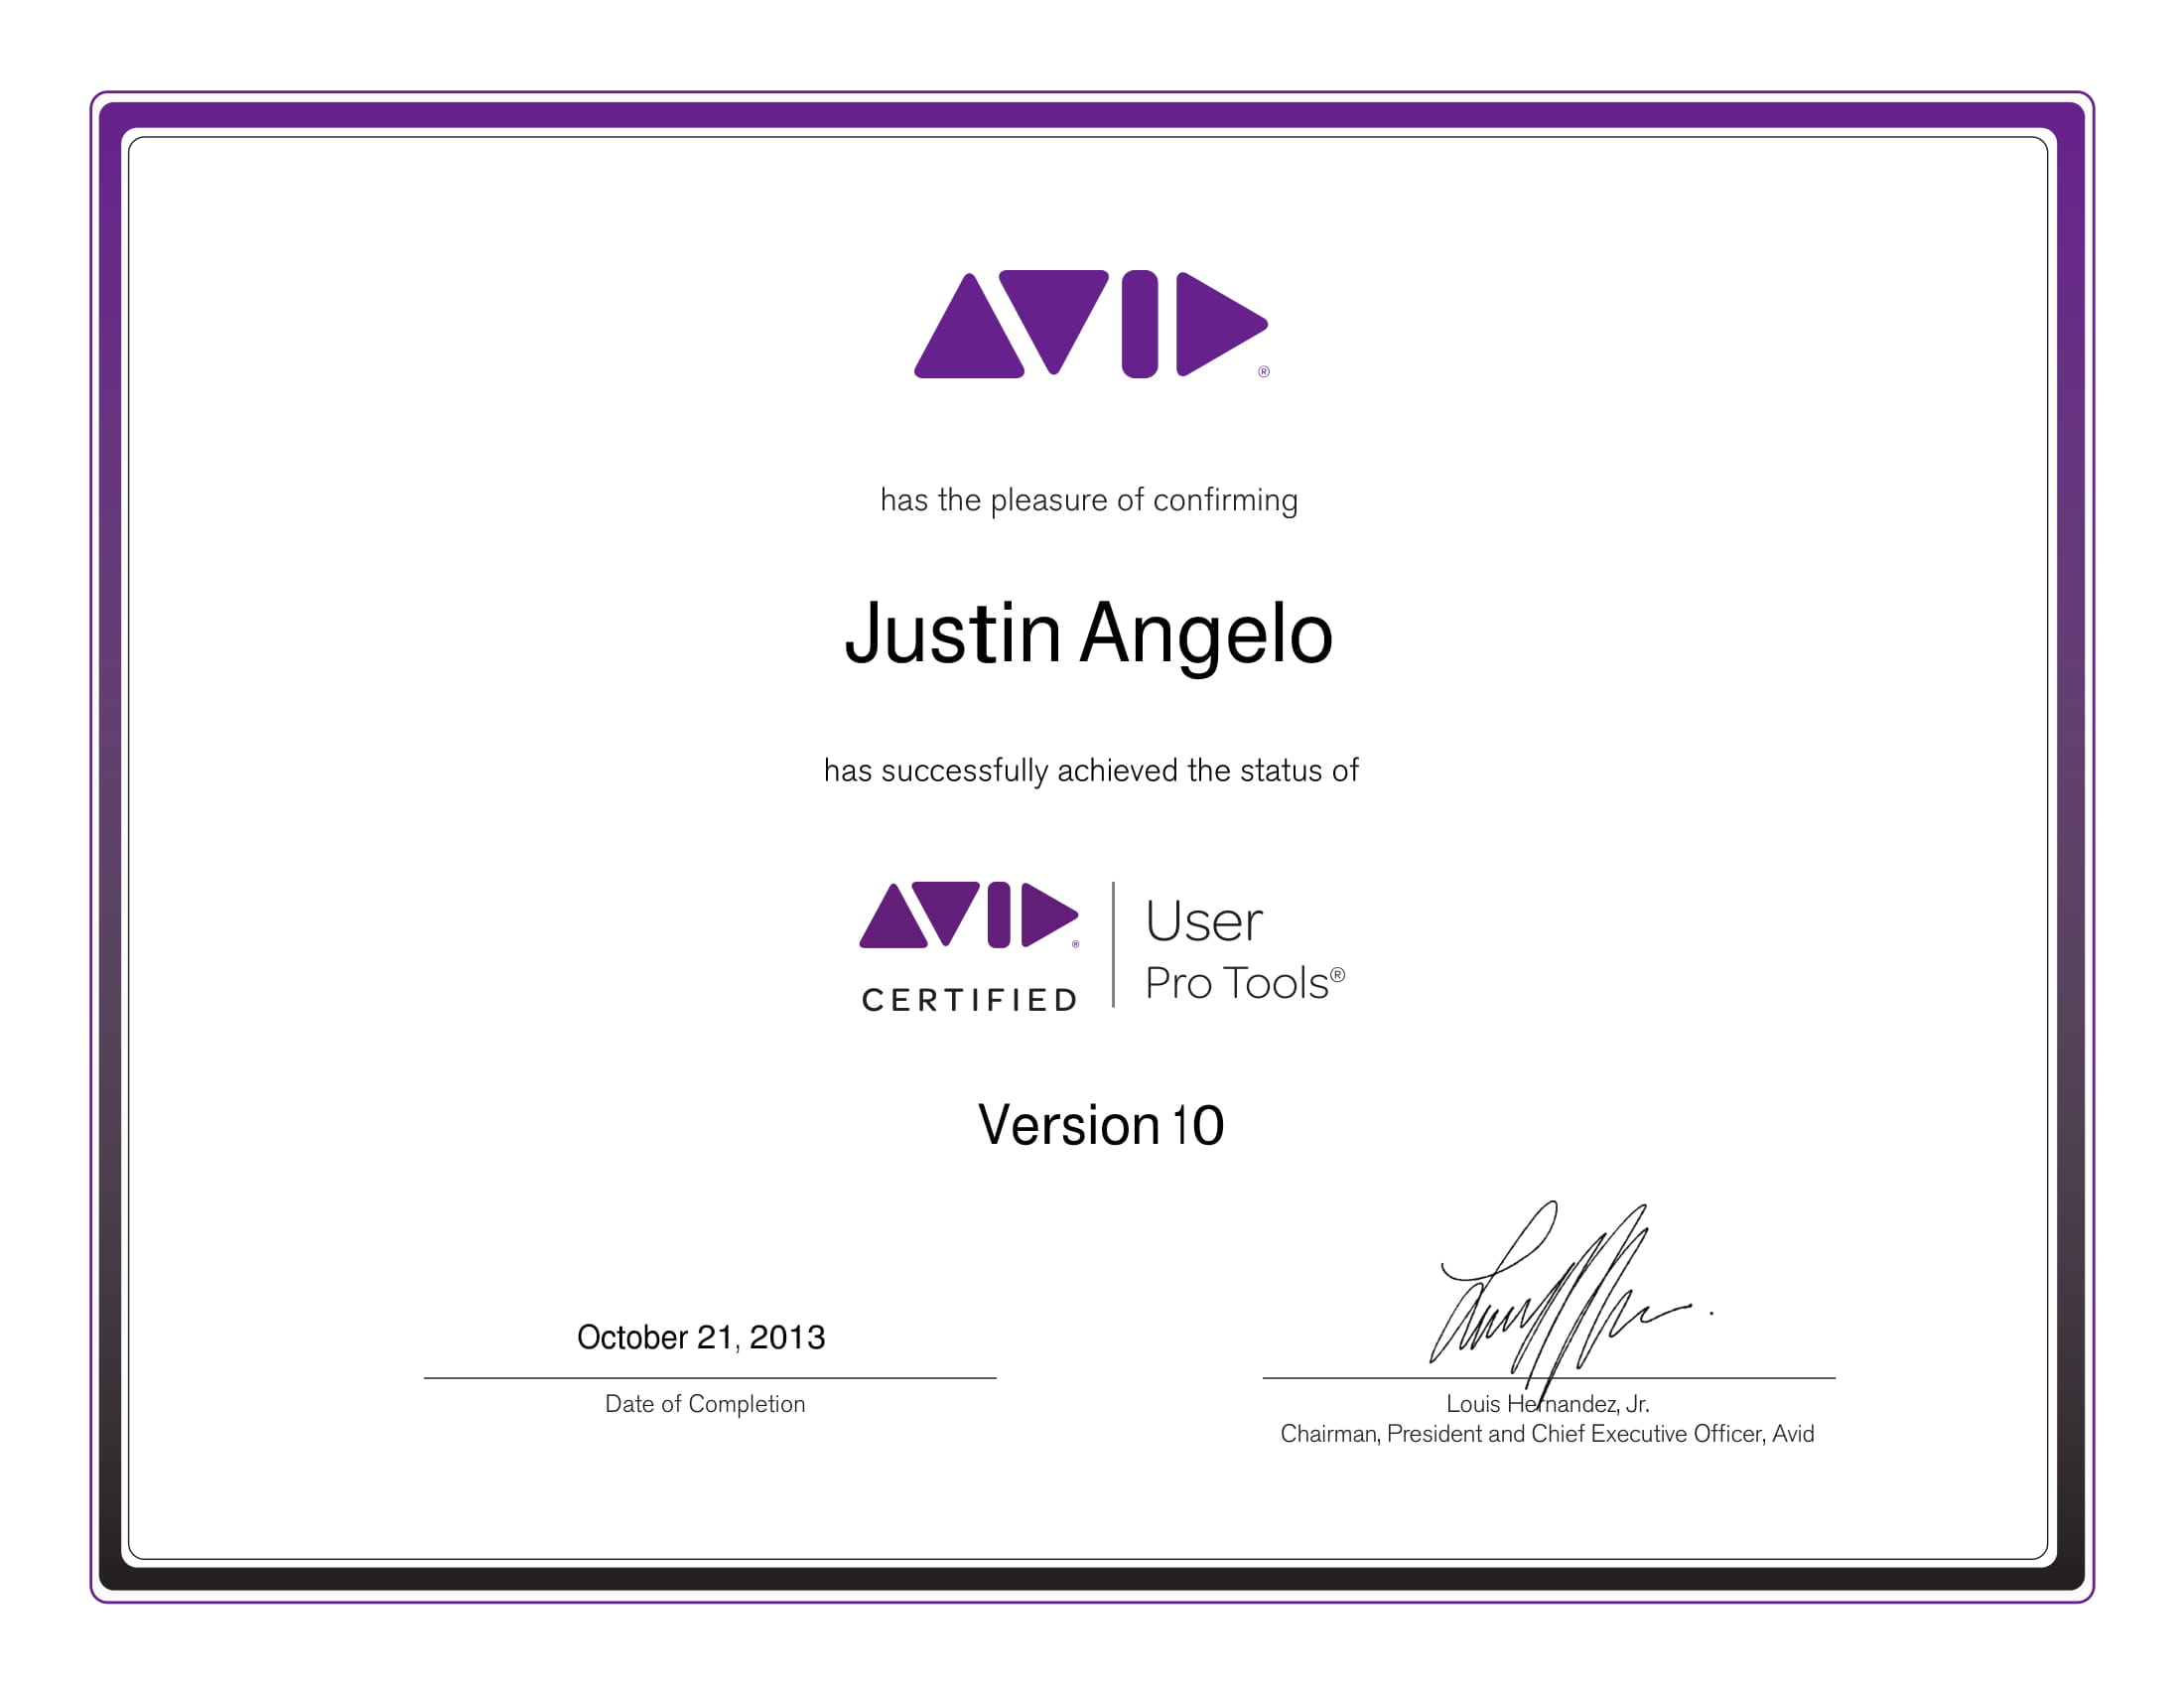 Avid Certification for Pro Tools Audio Engineering  - 10.21.2013